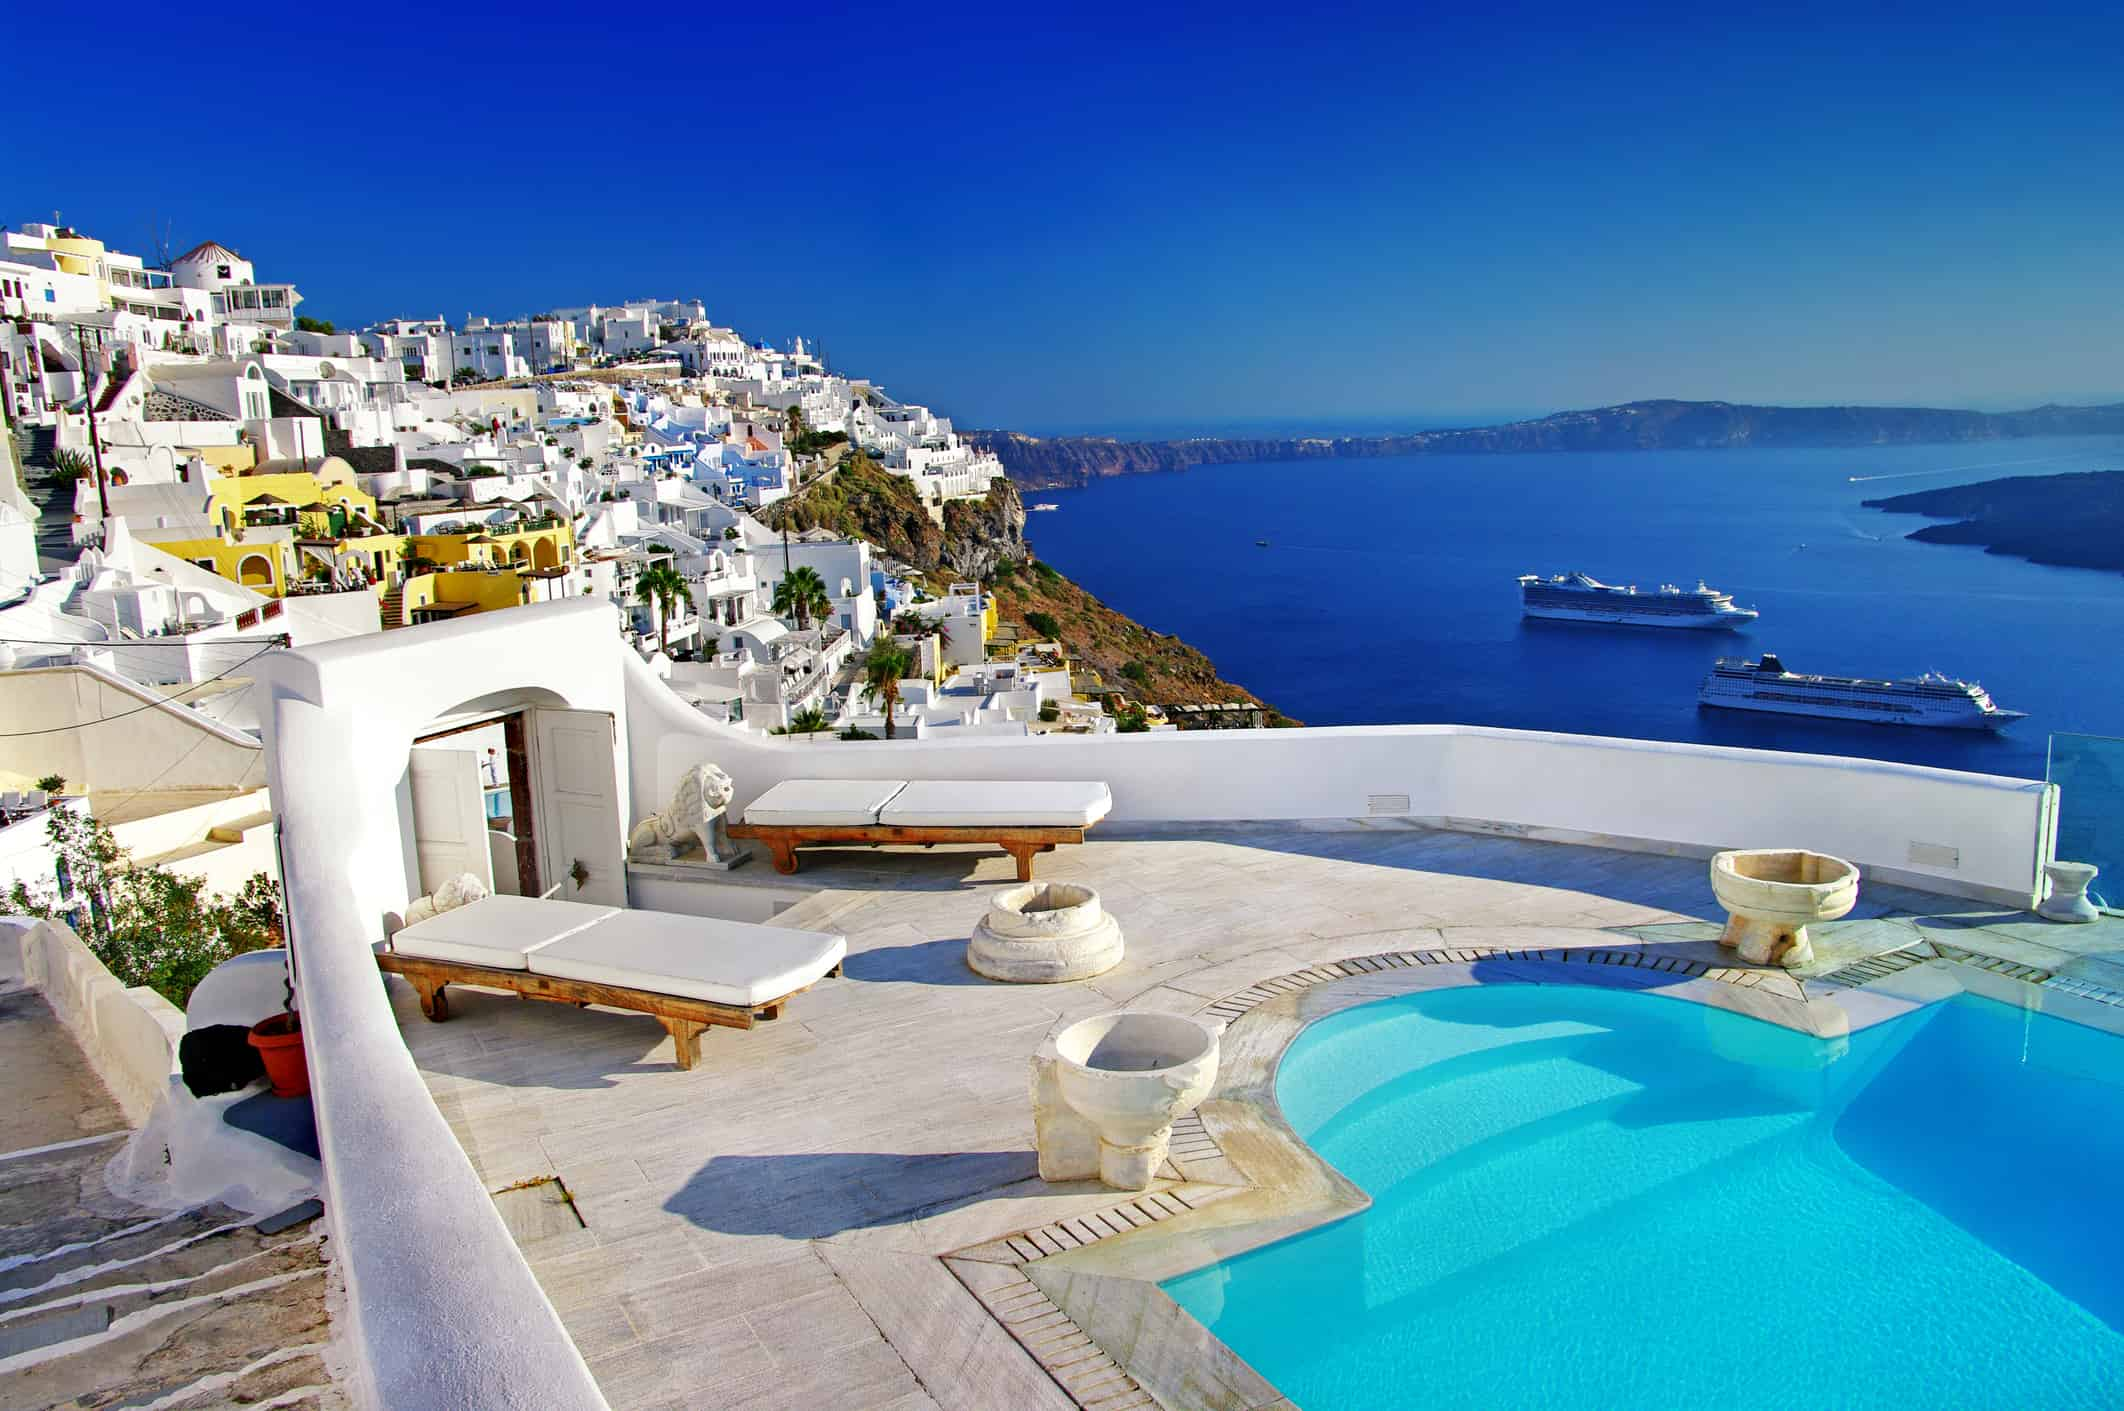 luxury holidays on Santorini island